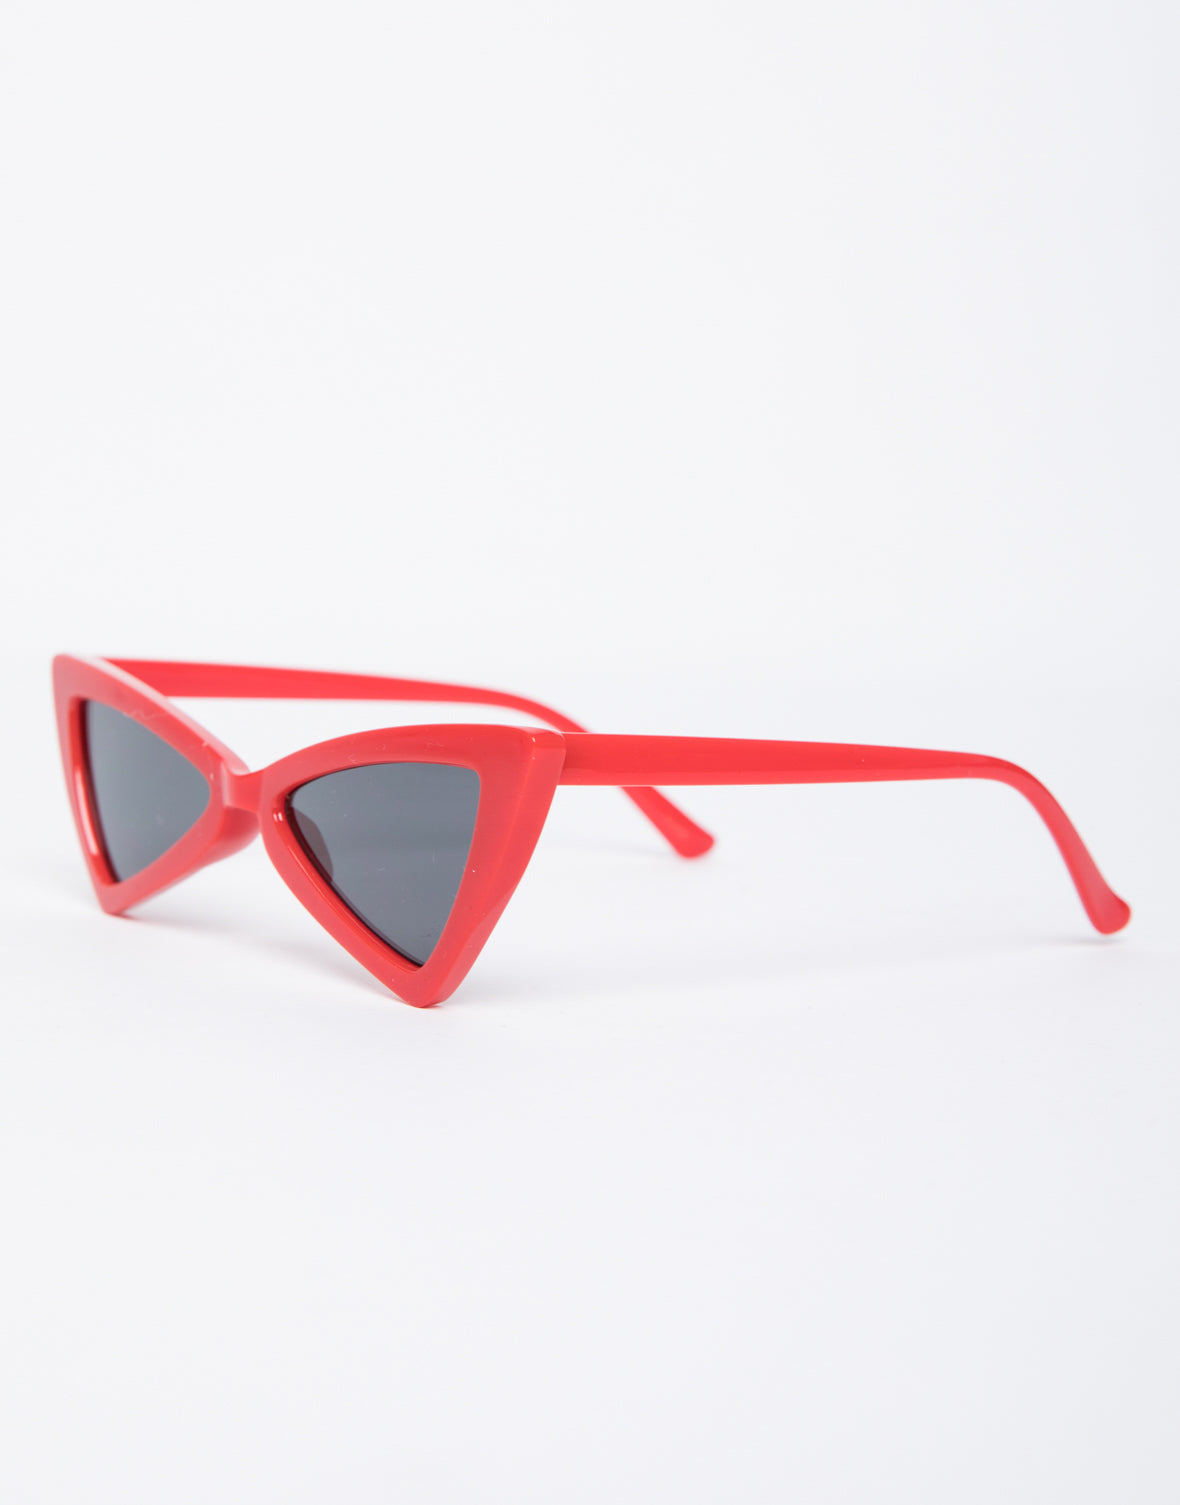 Triangular Cat Eye Sunnies